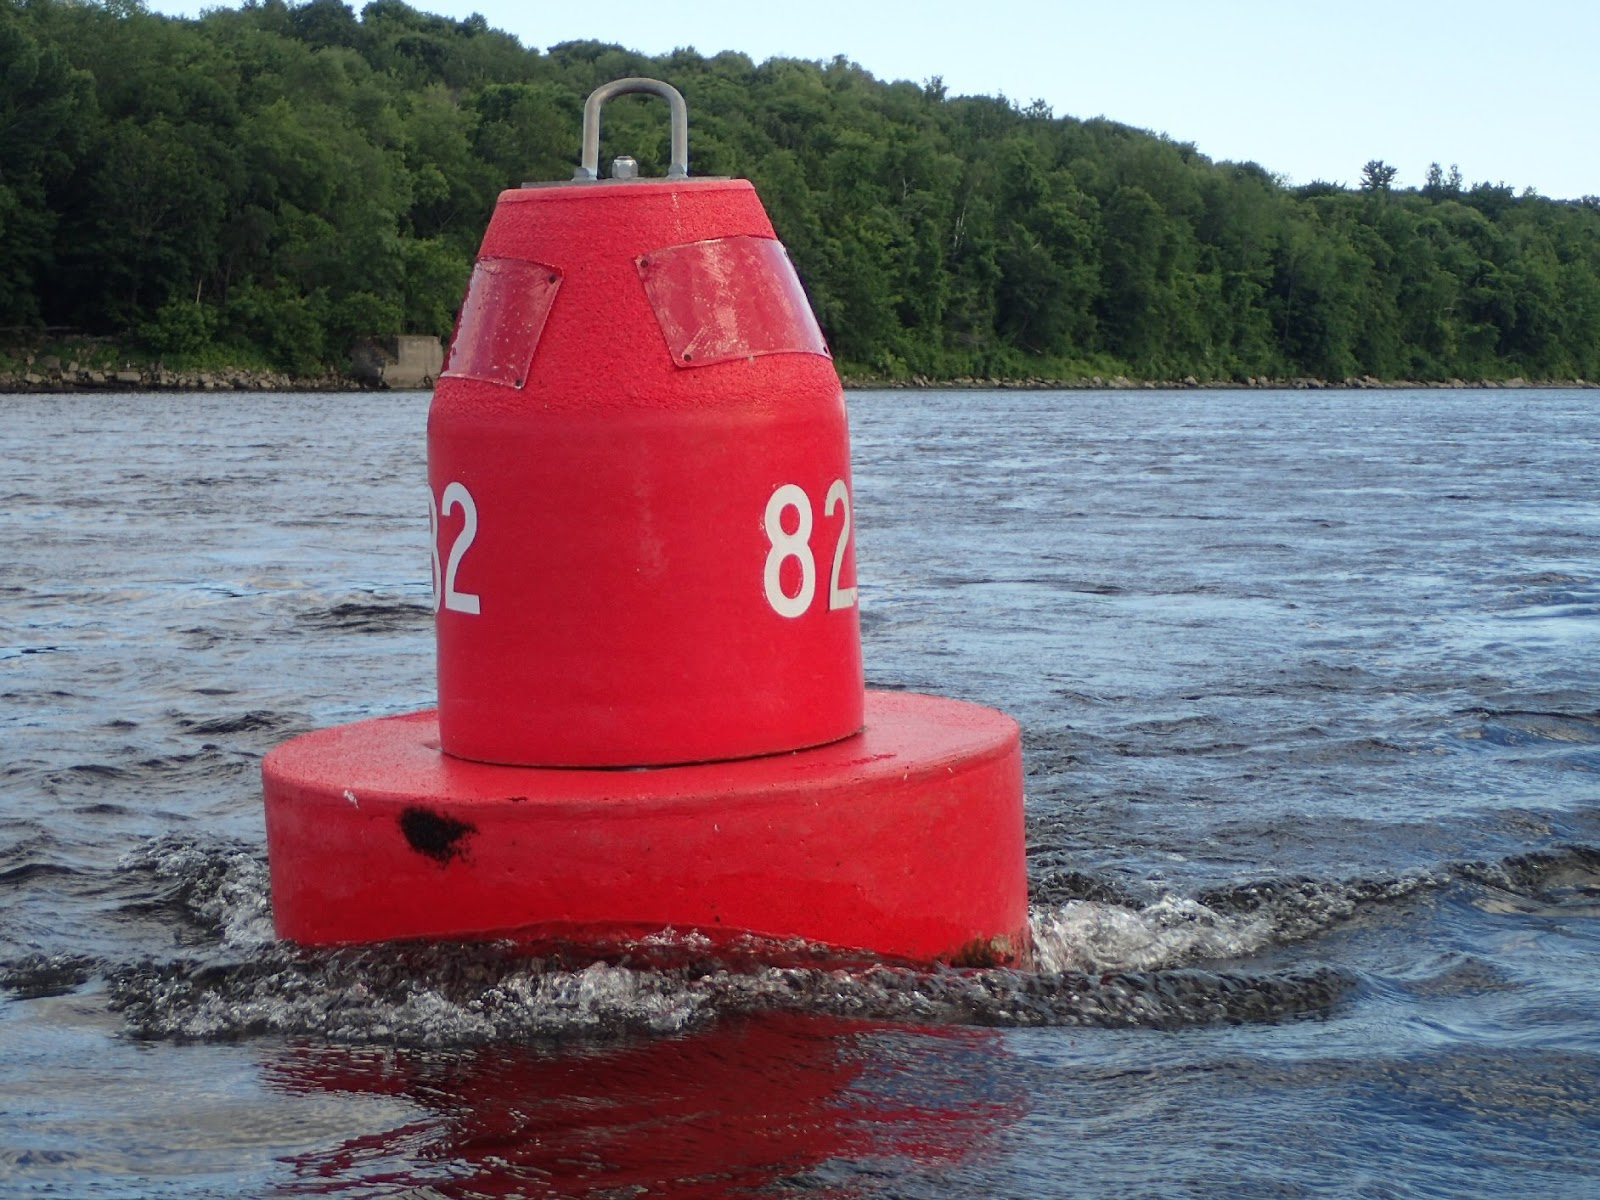 Penobscotpaddles kennebec river augusta me wildlife and current just above buoy 82 are some great stone buildings the old kennebec arsenal built between 1828 and 1838 these structures were annexed by the nearby maine geenschuldenfo Gallery